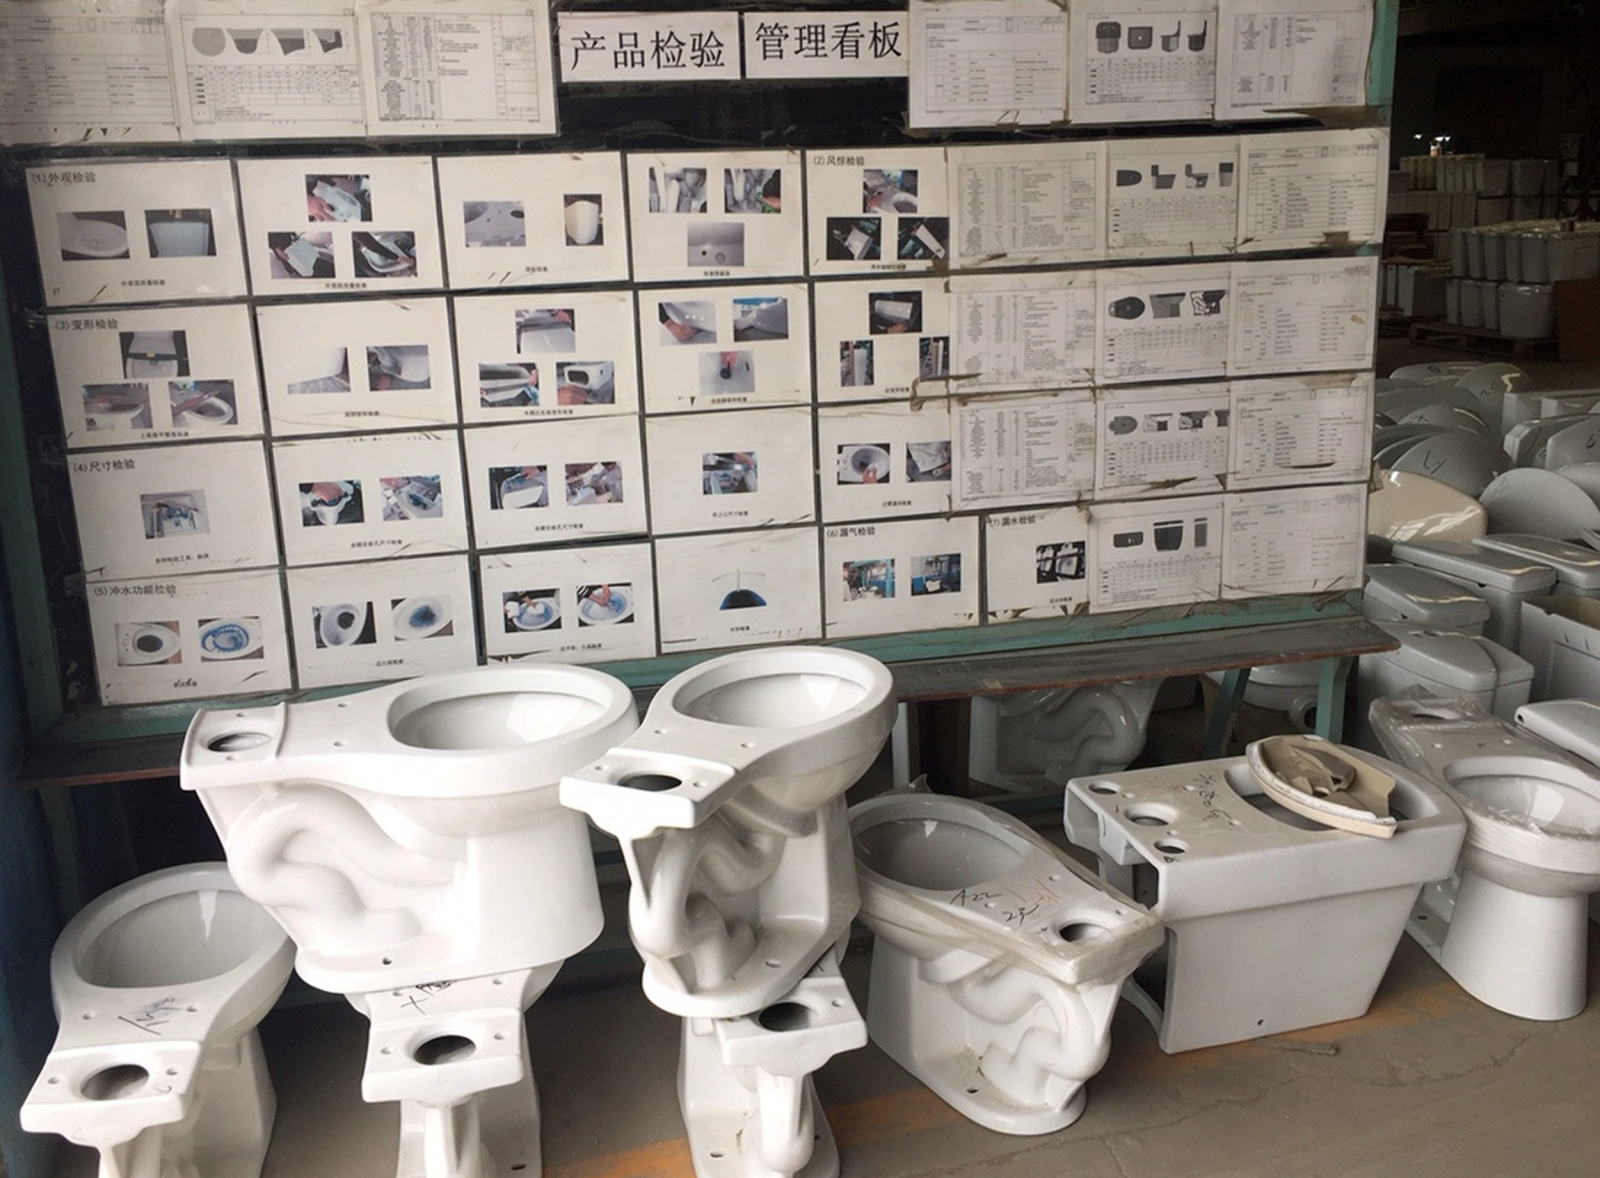 China toilet revolution